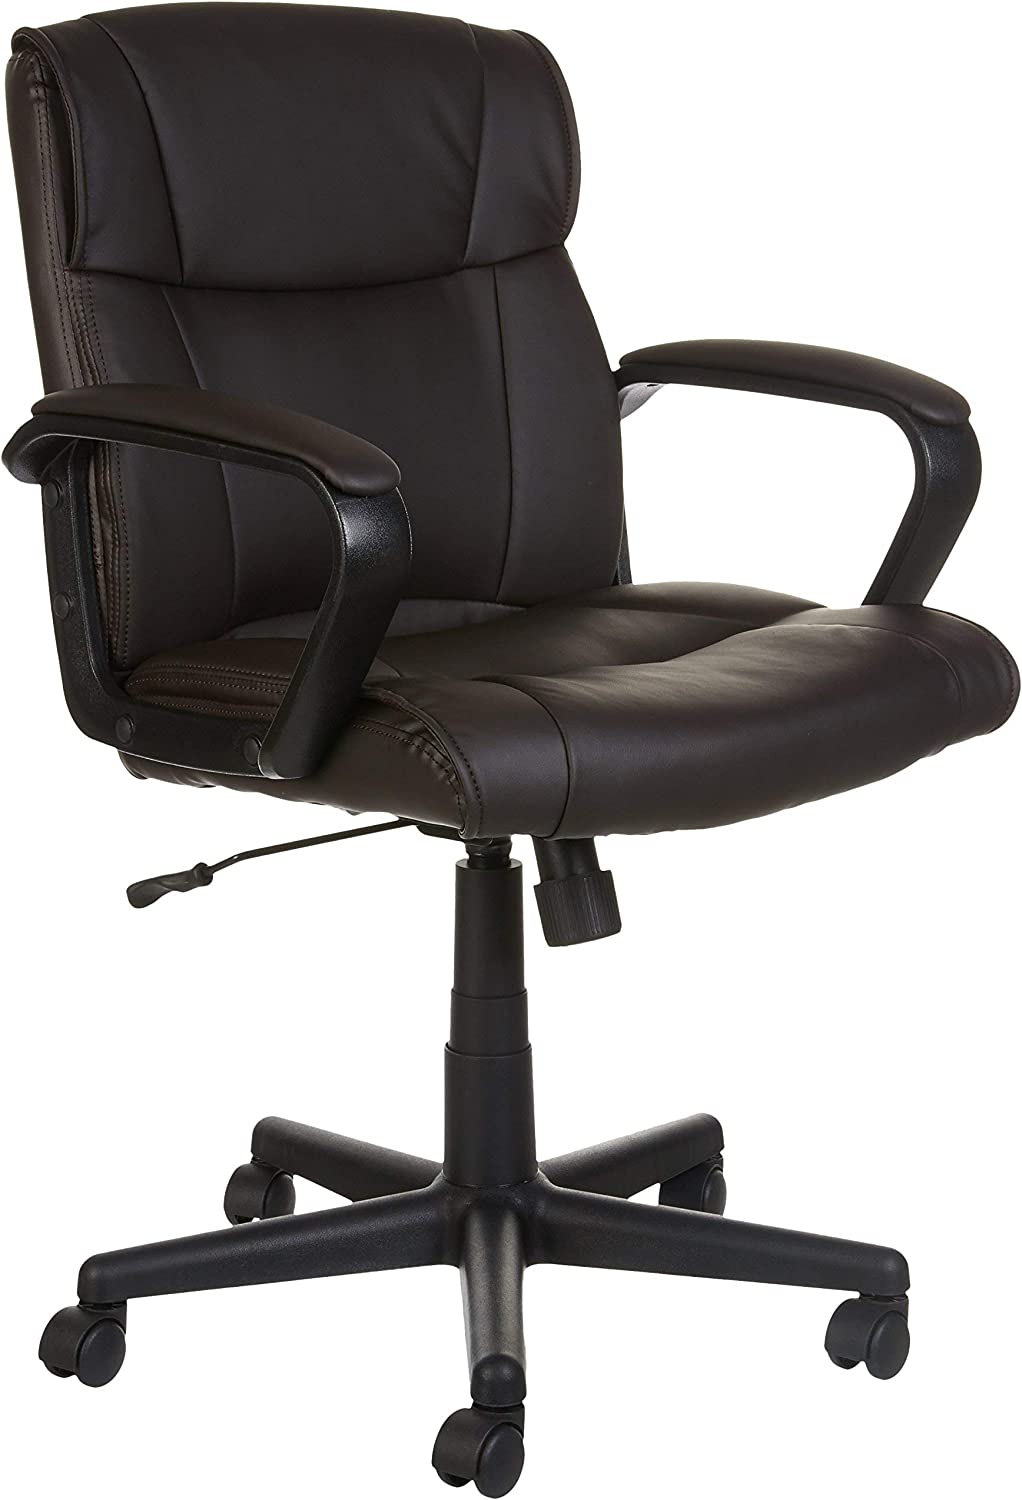 AmazonBasics Ergonomic Mid-Back Swivel Office Chair